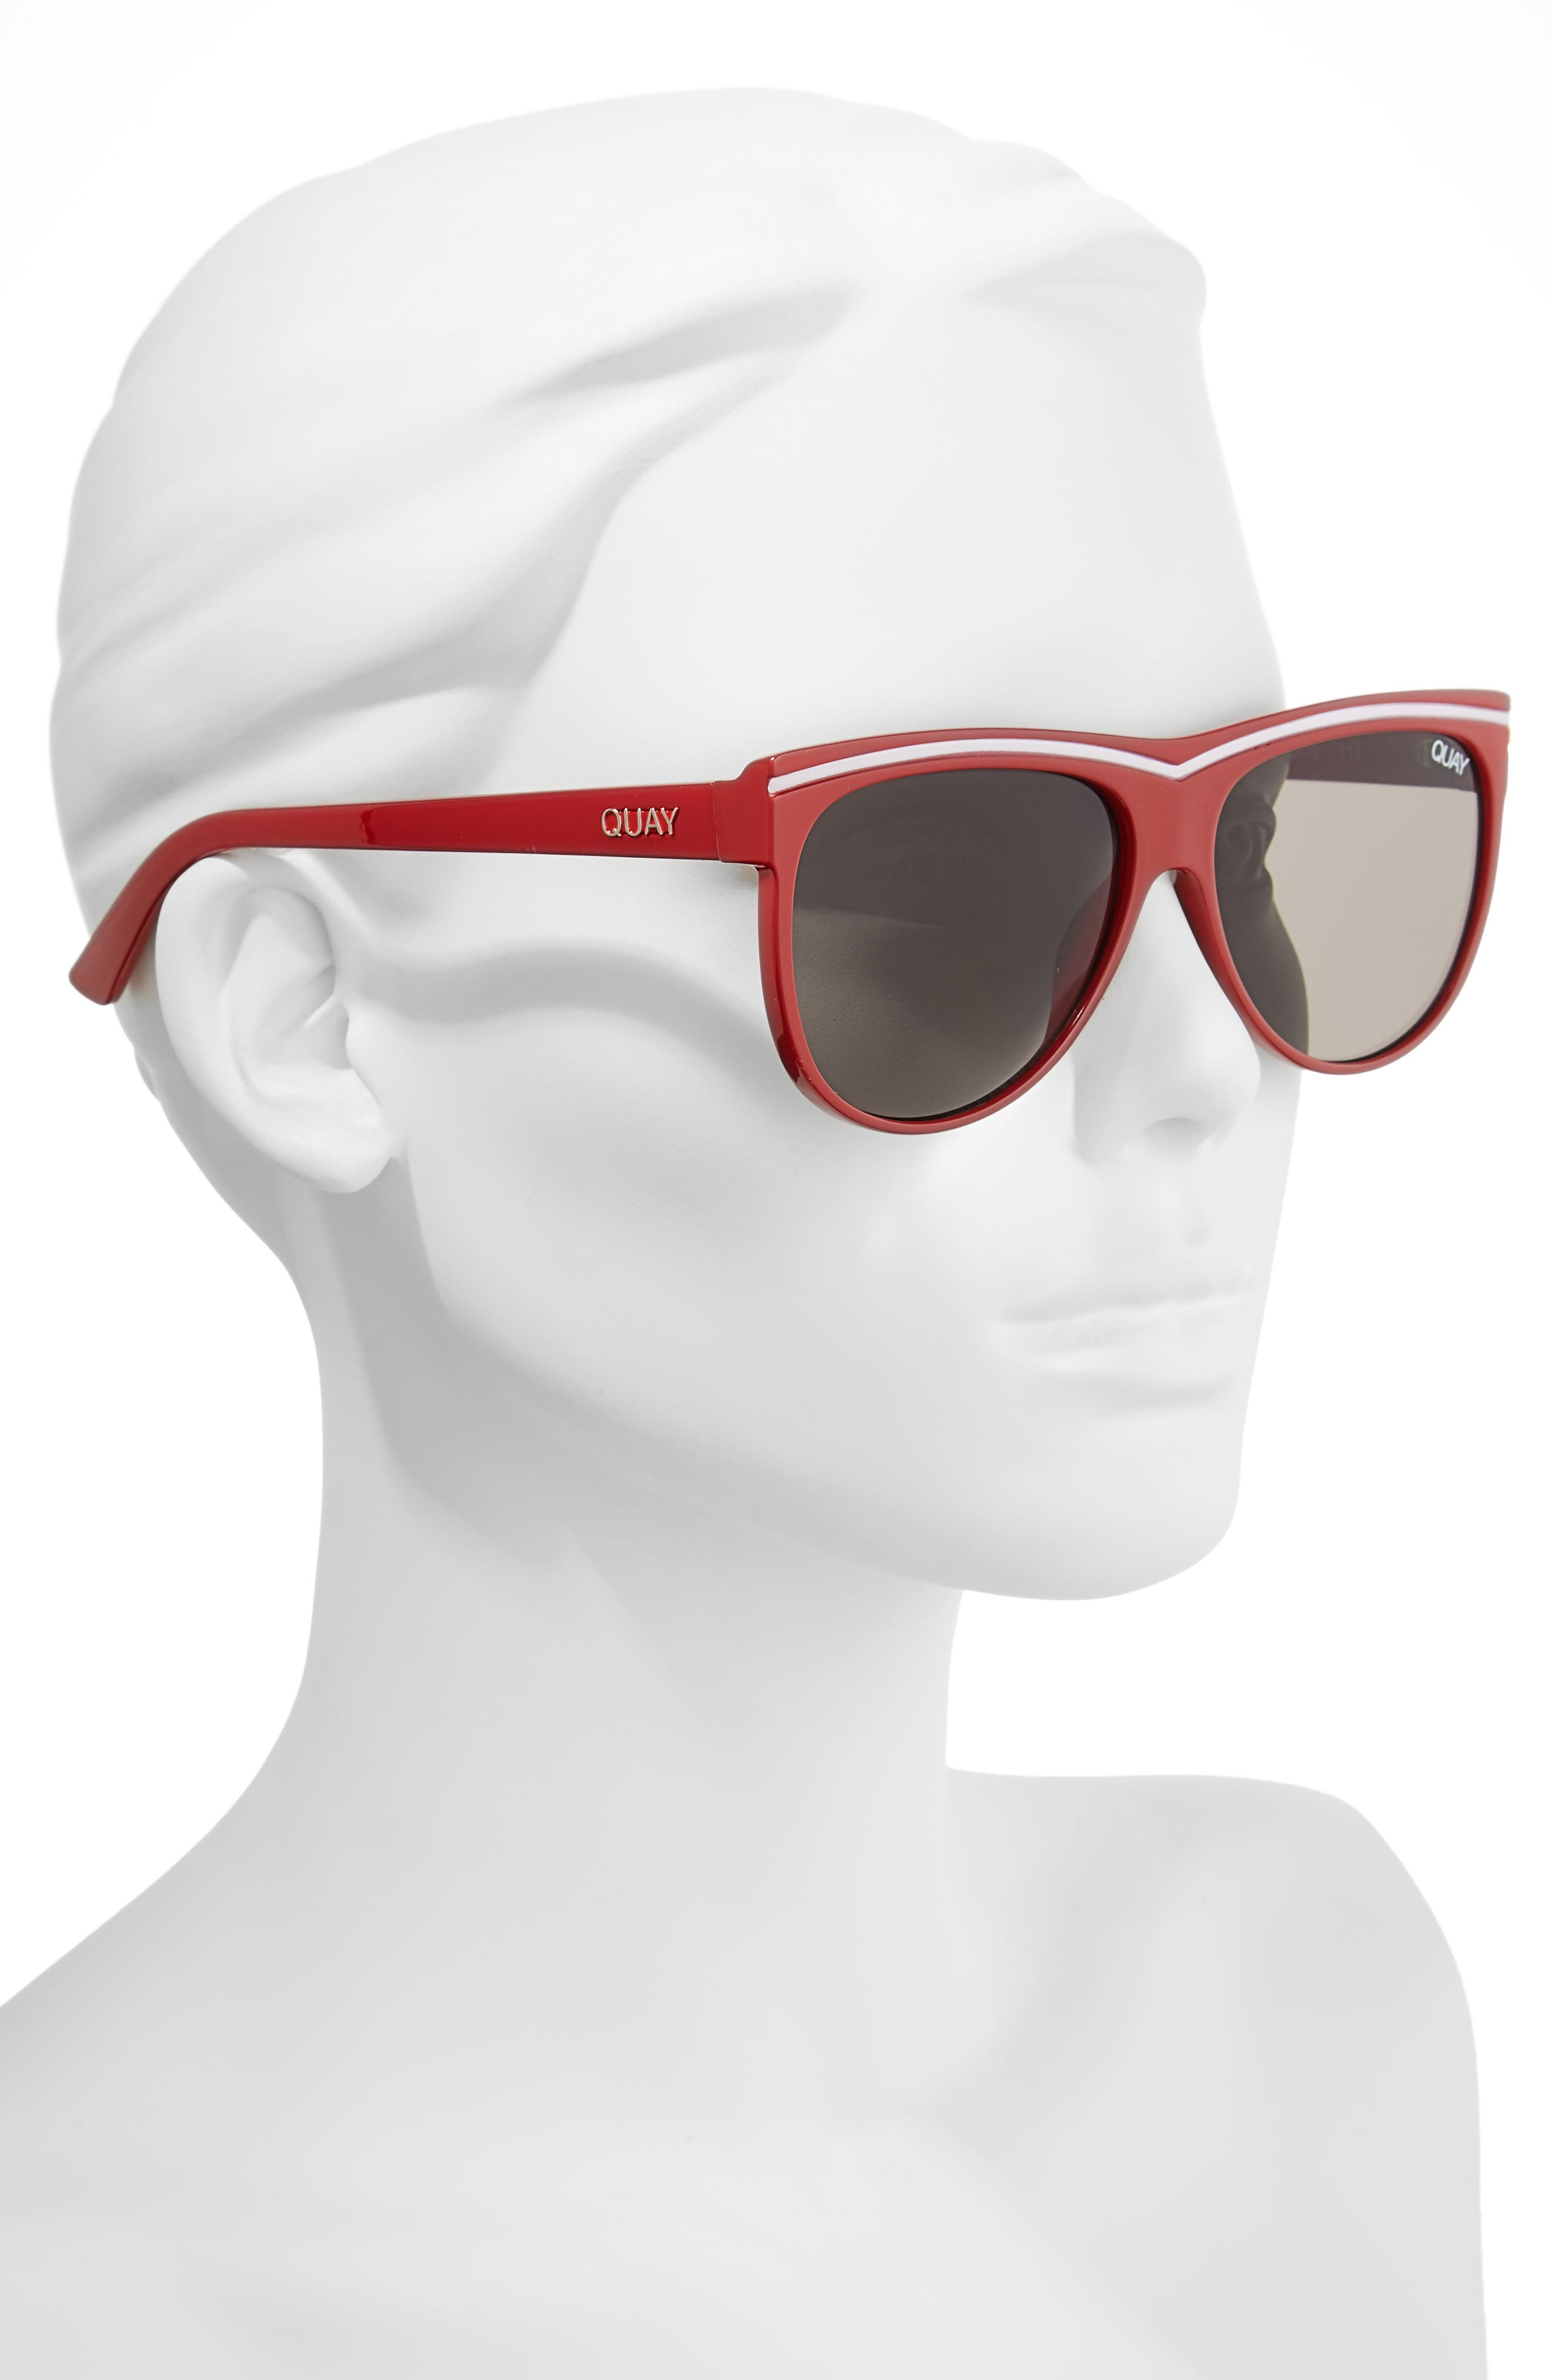 Hollywood Nights 62mm Sunglasses,                             Alternate thumbnail 2, color,                             Red Smoke